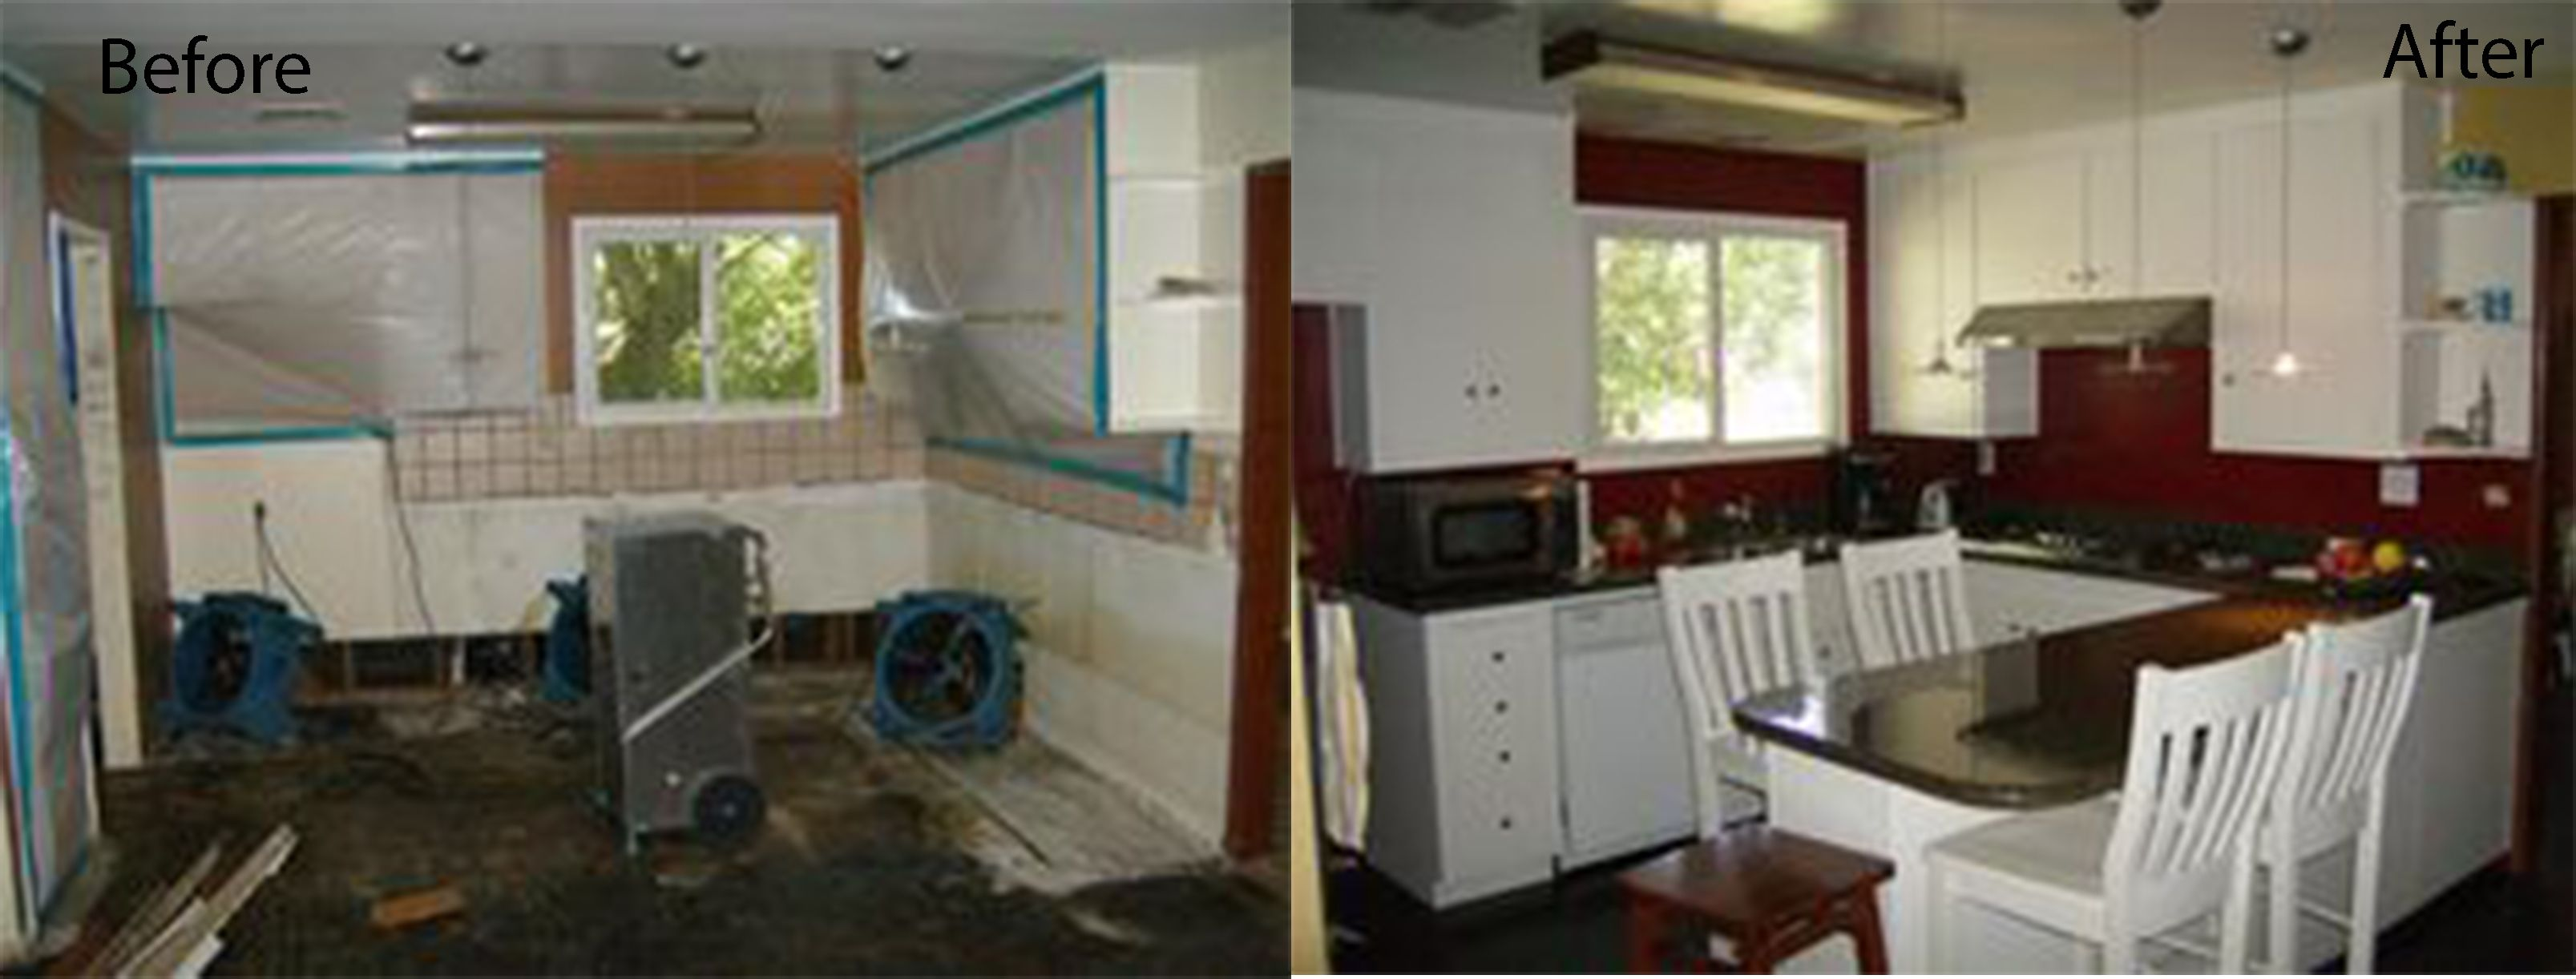 Before A Kitchen Damaged By A Water Leak That Caused Mold After Kitchen Restored To Its Pre Loss Conditio Furniture Makeover Cabinet Repair Cabinet Furniture